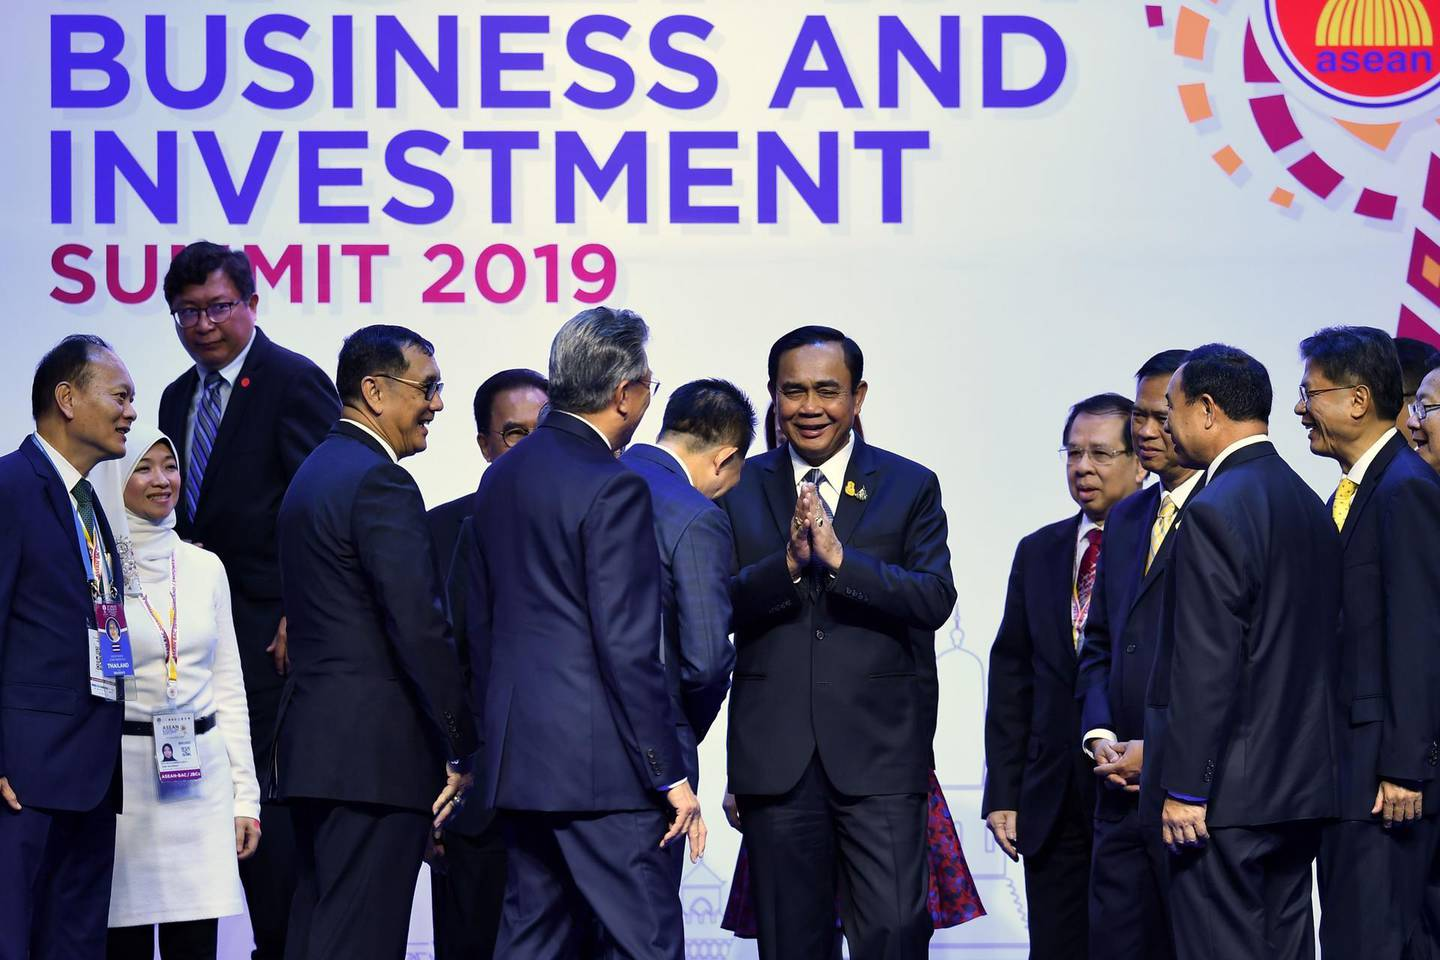 Thailand prime minister Prayut Chan-O-Cha (C) greets distinguished guests at a business forum on the sidelines of the 35th Association of Southeast Asian Nations (ASEAN) summit in Bangkok on November 2, 2019. / AFP / Lillian SUWANRUMPHA